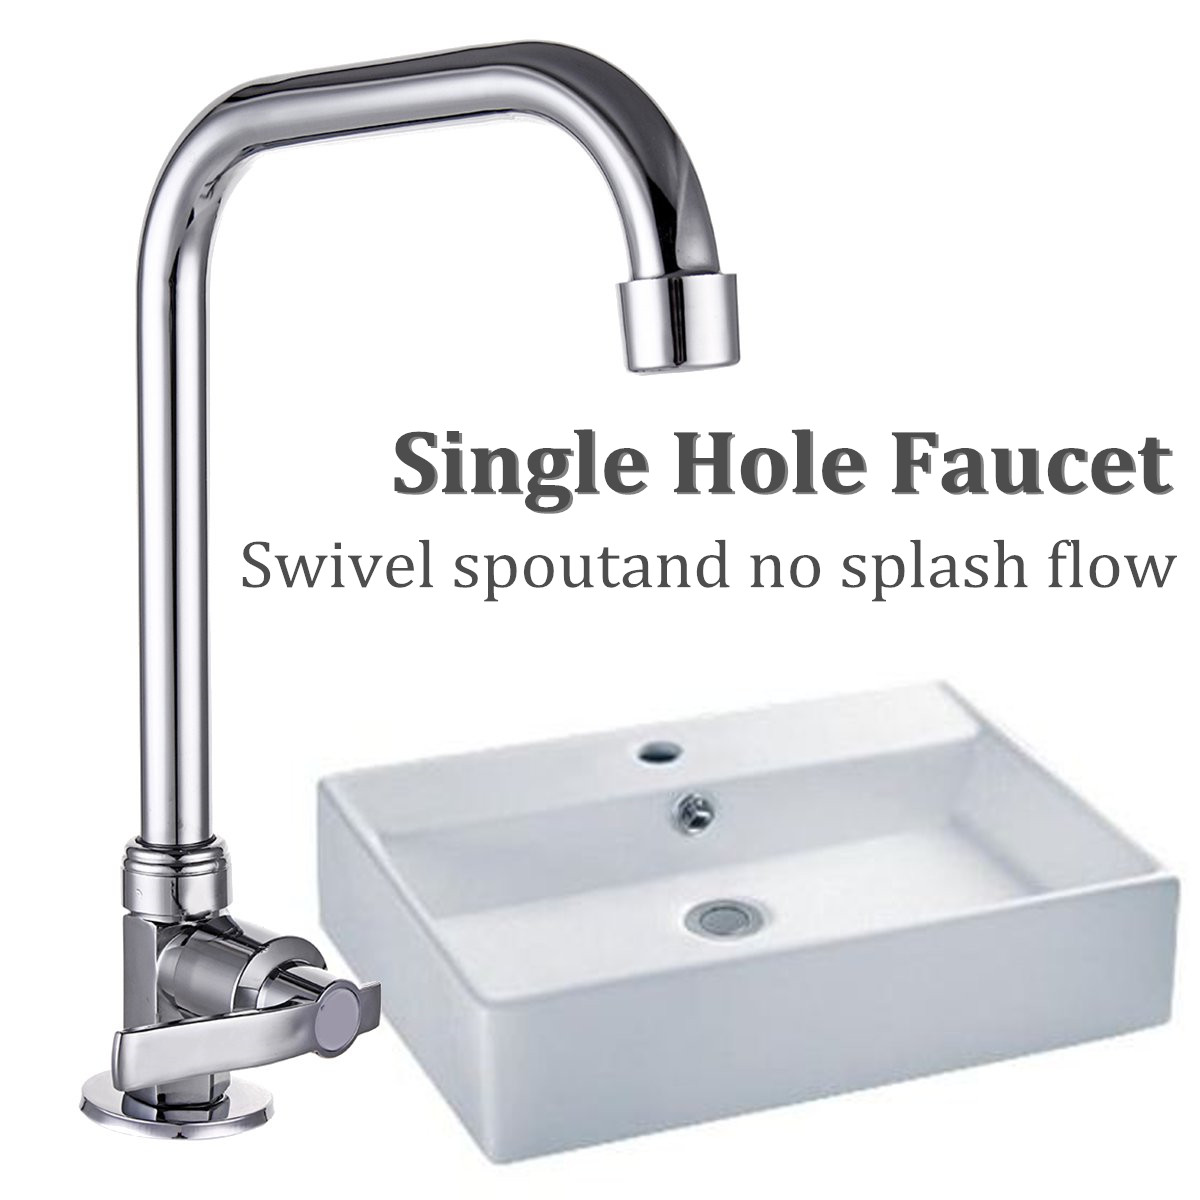 Stainless Steel Single Hole Faucet Kitchen Wash Basin Rotate Water Taps Mixer